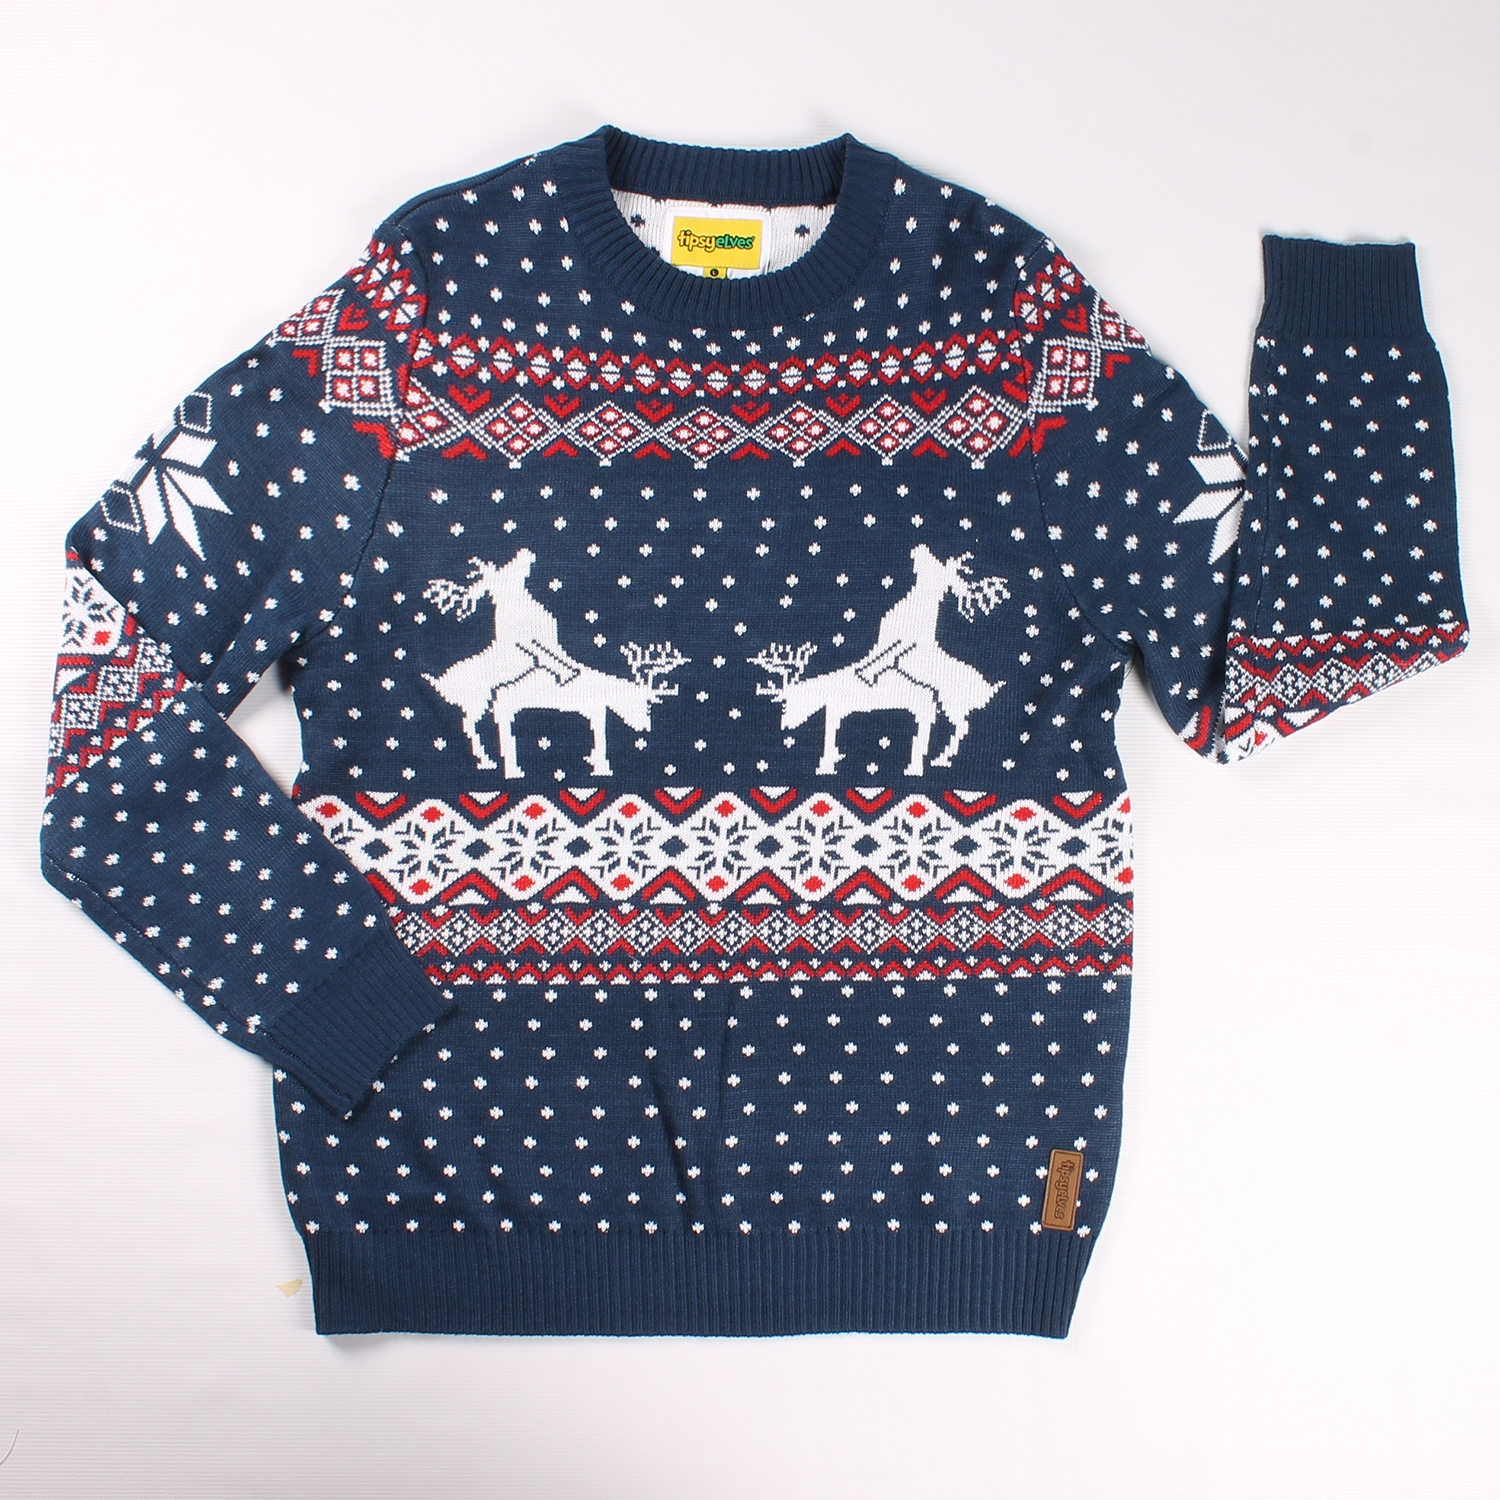 Reindeer Climax Christmas Sweater - PopCult Wear